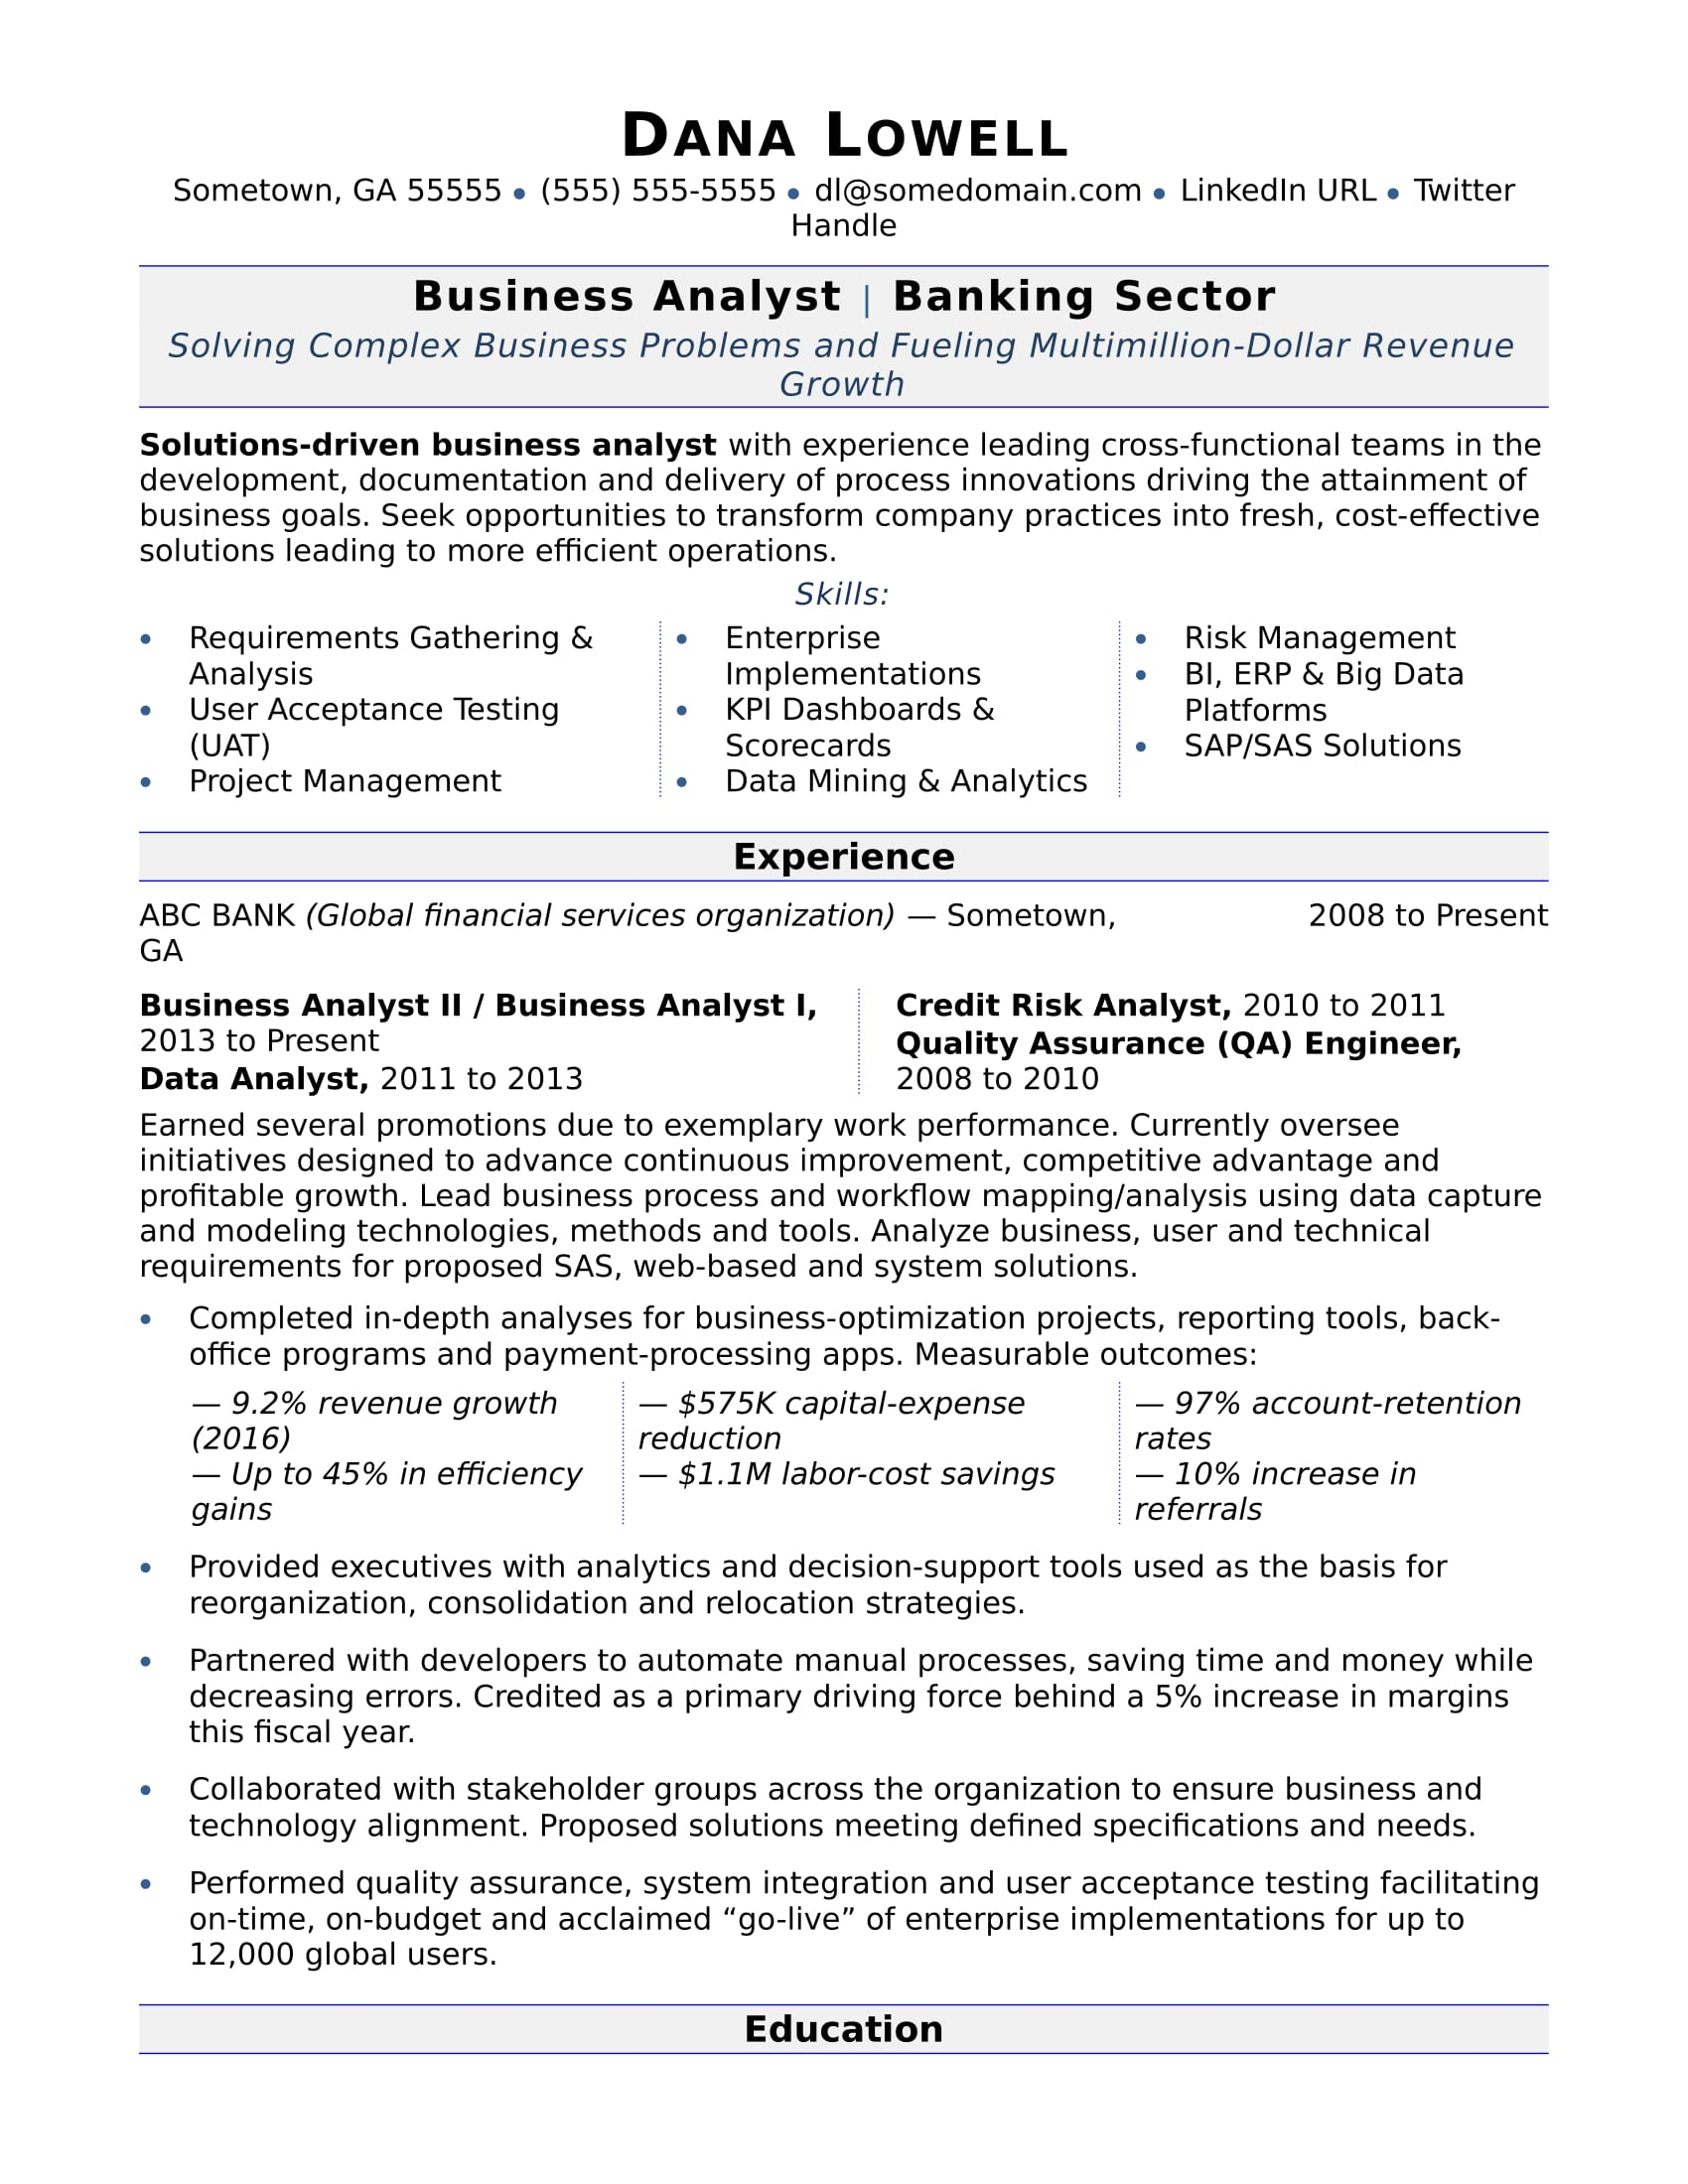 Delightful Business Analyst Resume Sample Regarding Pricing Analyst Resume